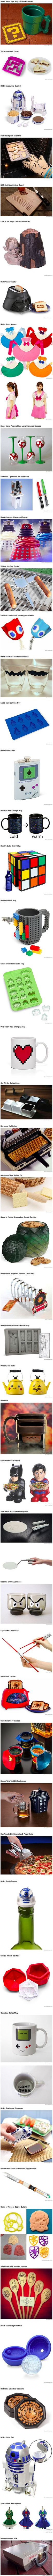 Here are some creative kitchen gadgets and acccessories that geeks would love.